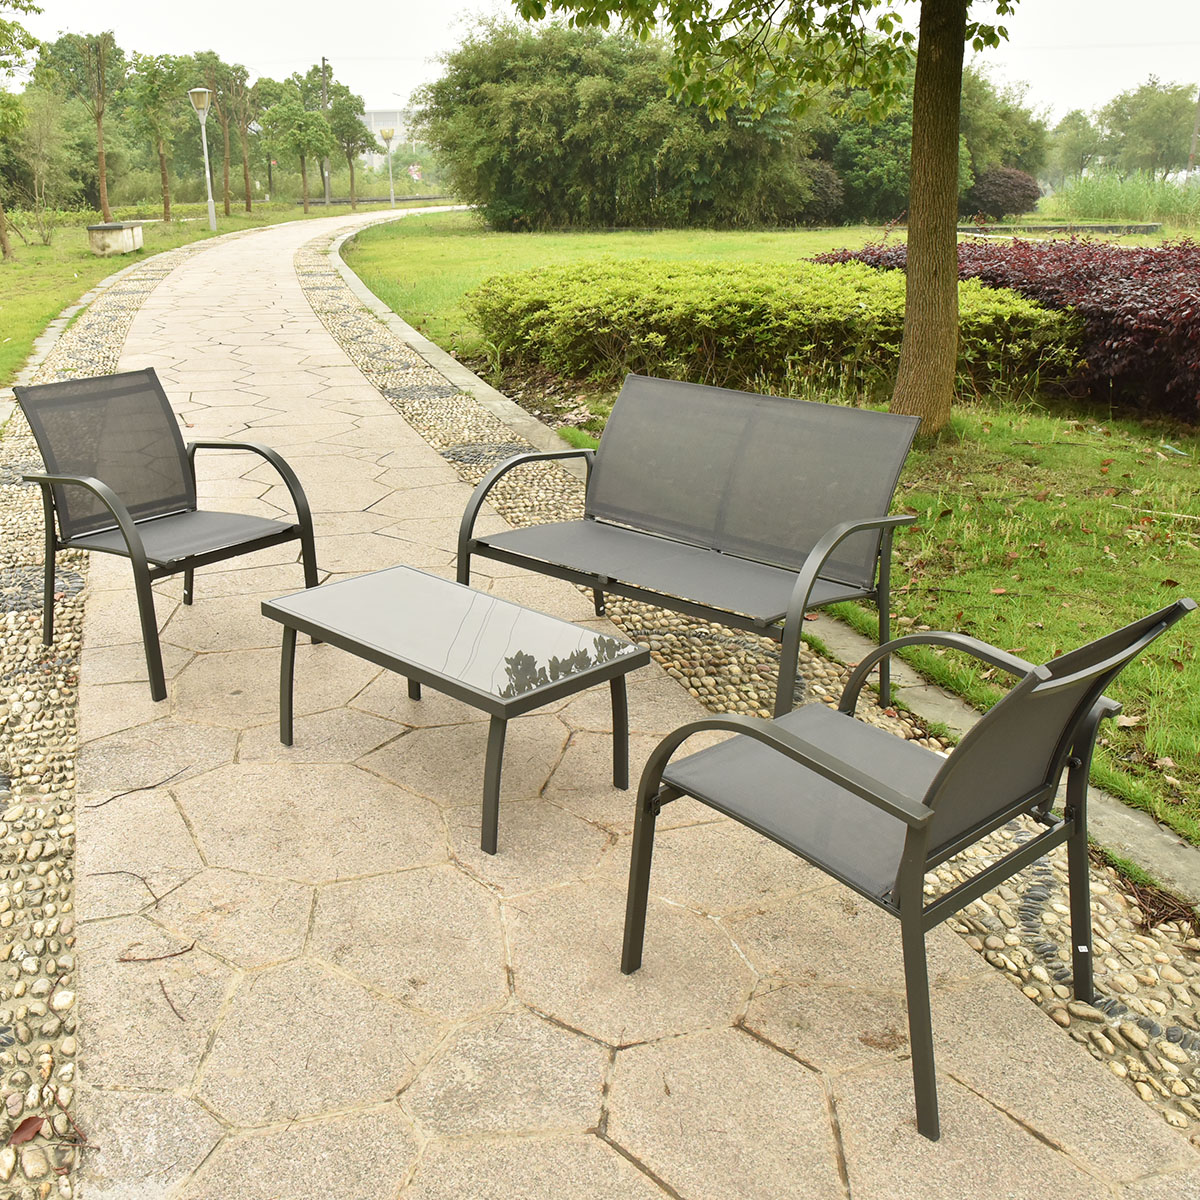 garden sets costway 4pcs patio garden furniture set steel frame outdoor lawn sofa OAFWVVR